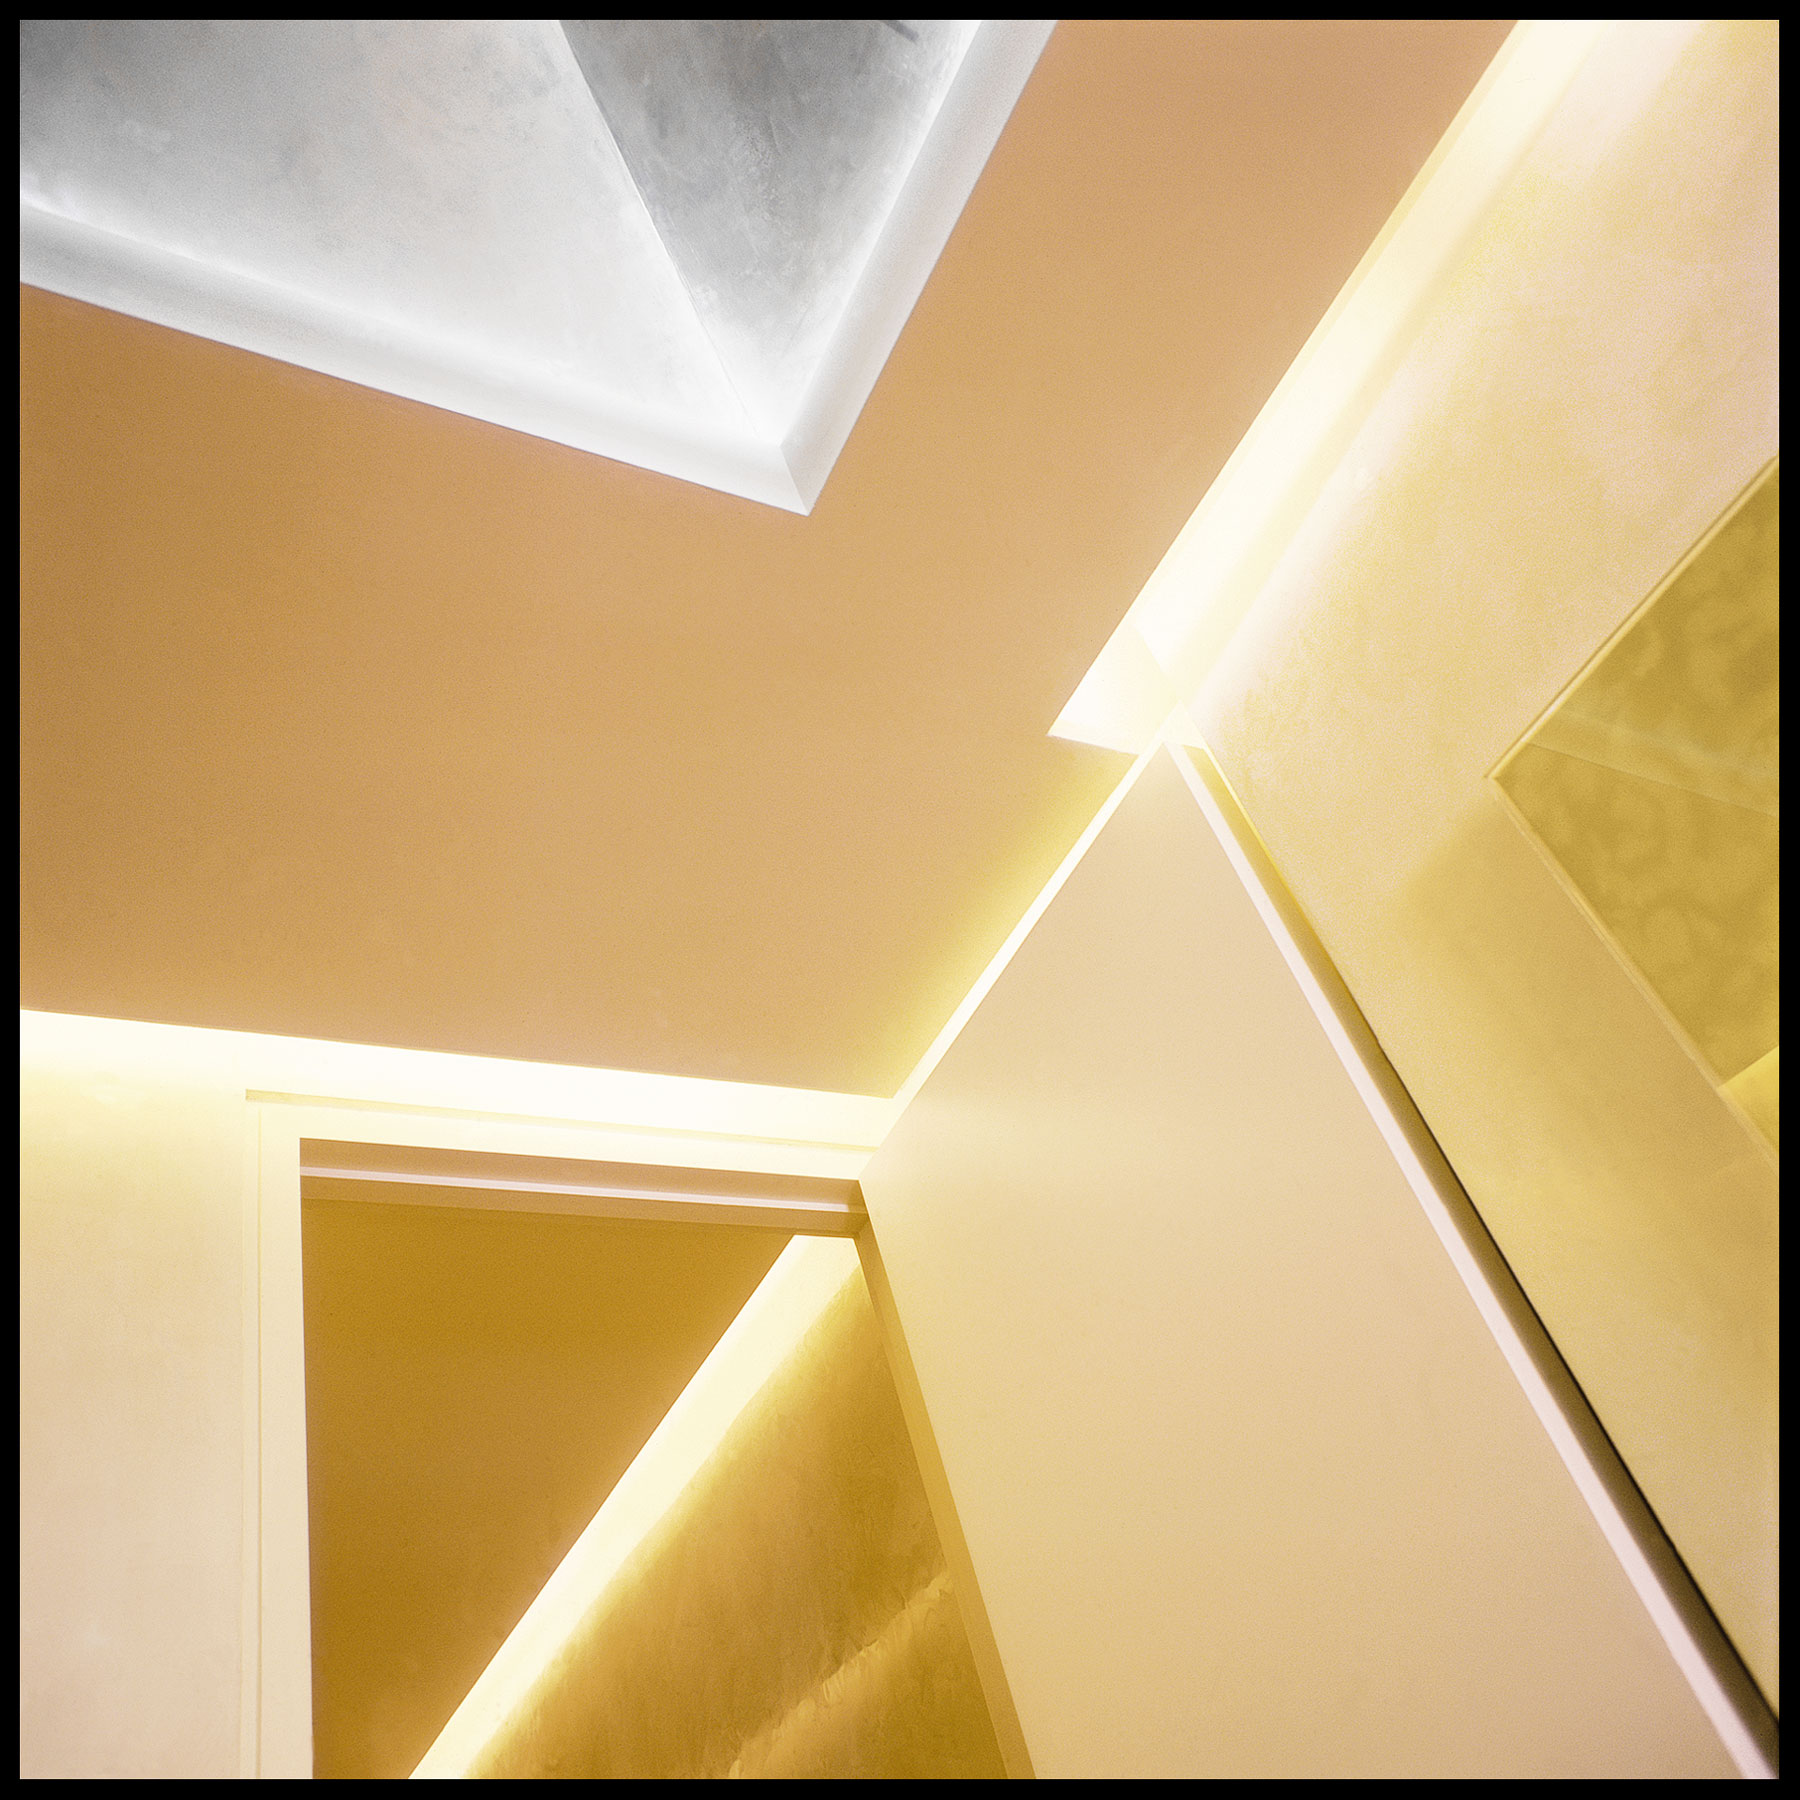 Modern lighting design integrate into walls & ceilings